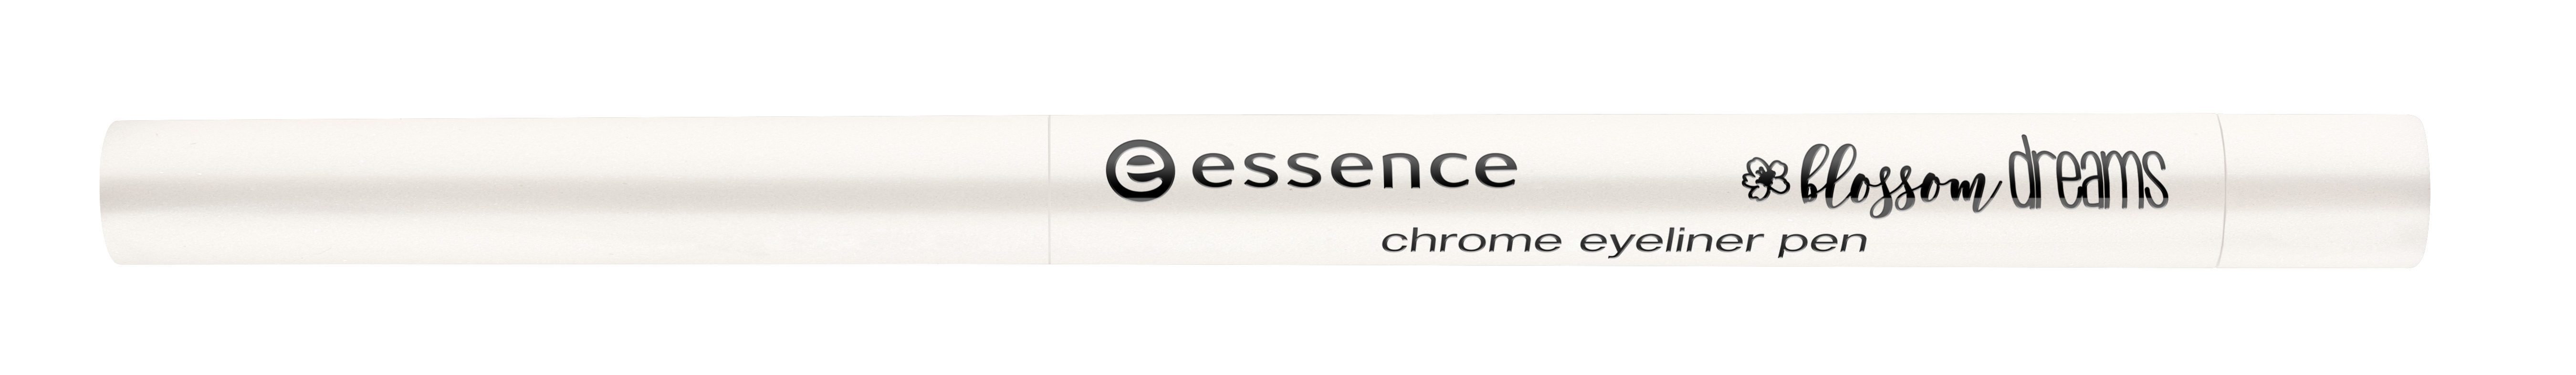 essence blossom dreams eyliner pen